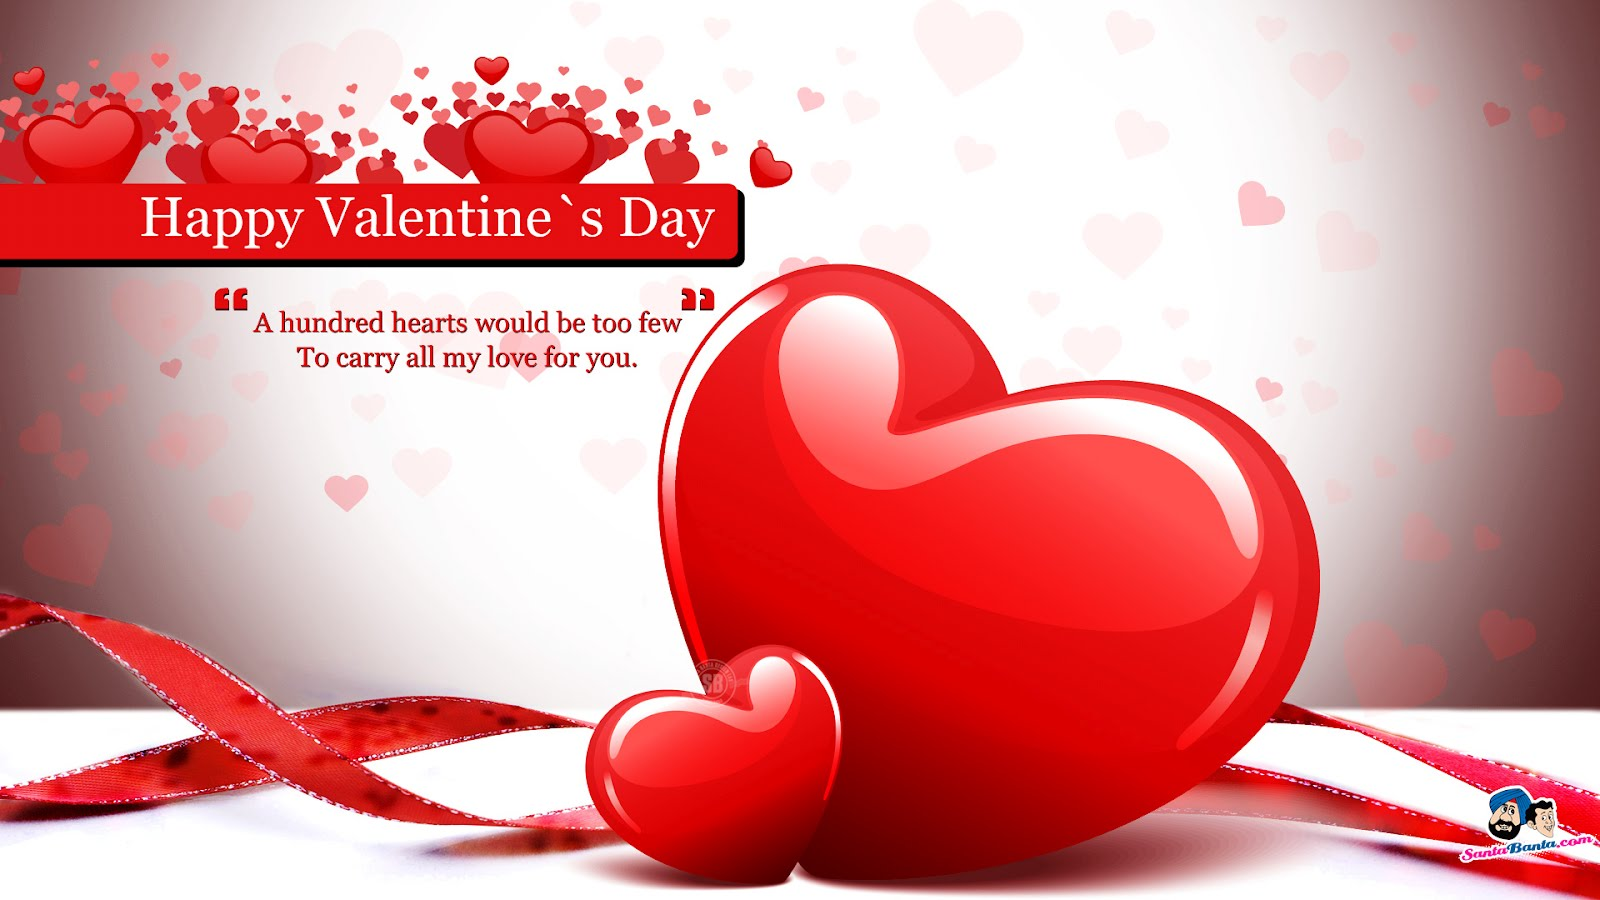 20 valentine s day wishes and wallpapers